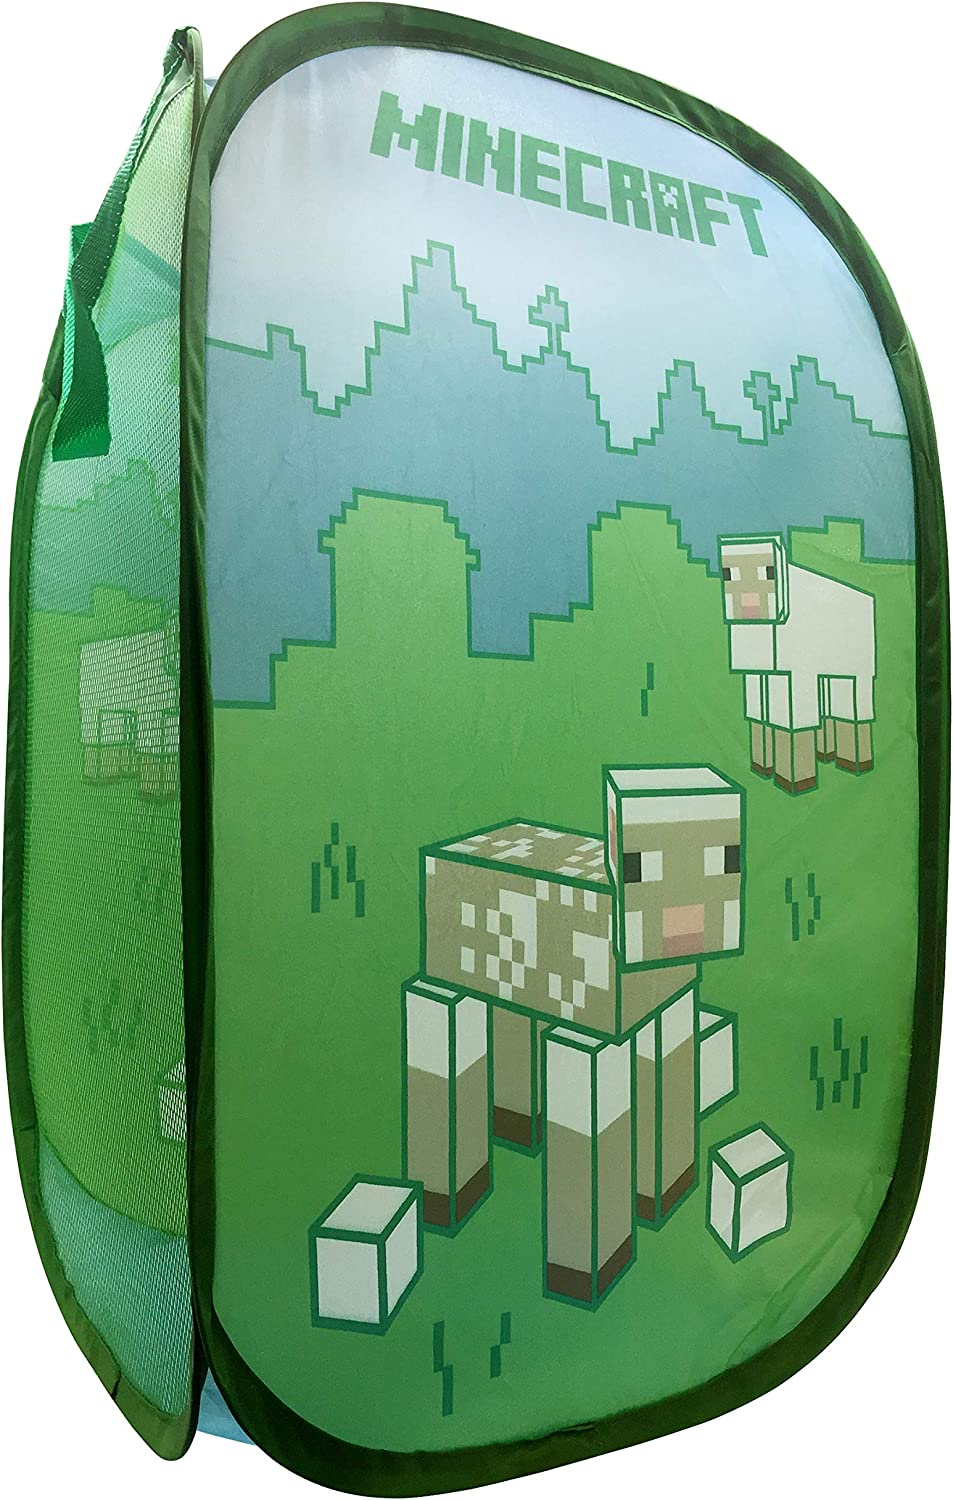 Minecraft Shorn Sheep Pop Up Hamper Basket Laundry Mesh Max 50% OFF wi - It is very popular Bag